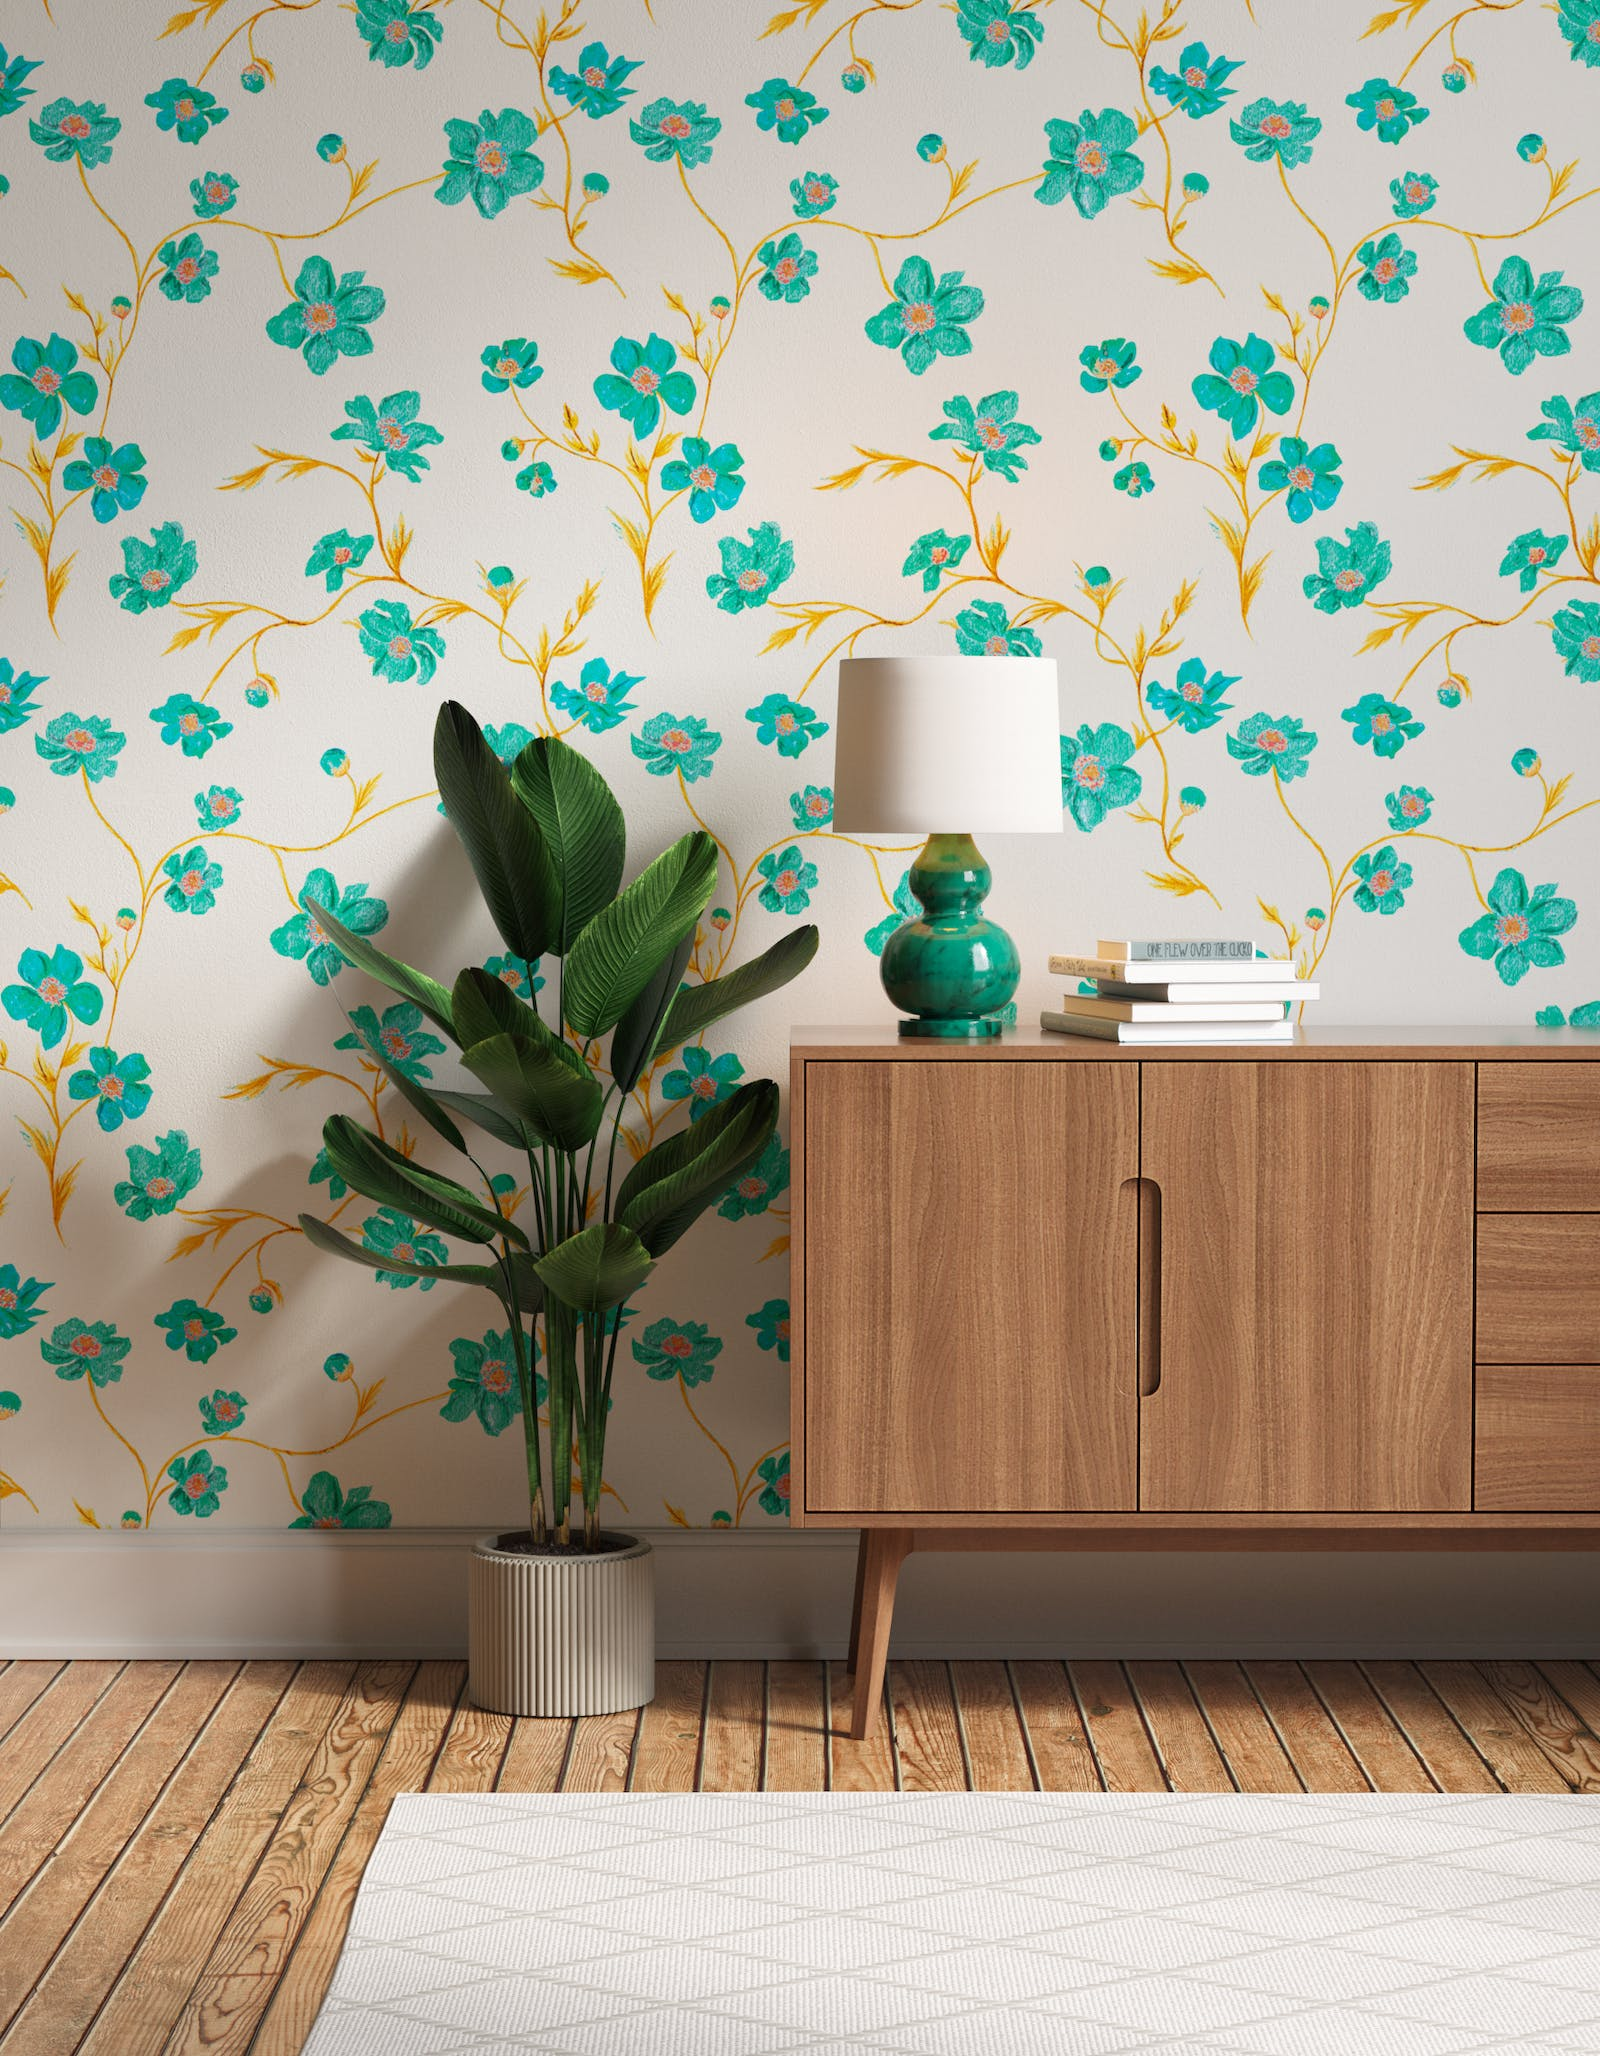 Hallway decorated with Lick x Jenna Hewitt Anemone 01 turquoise floral wallpaper